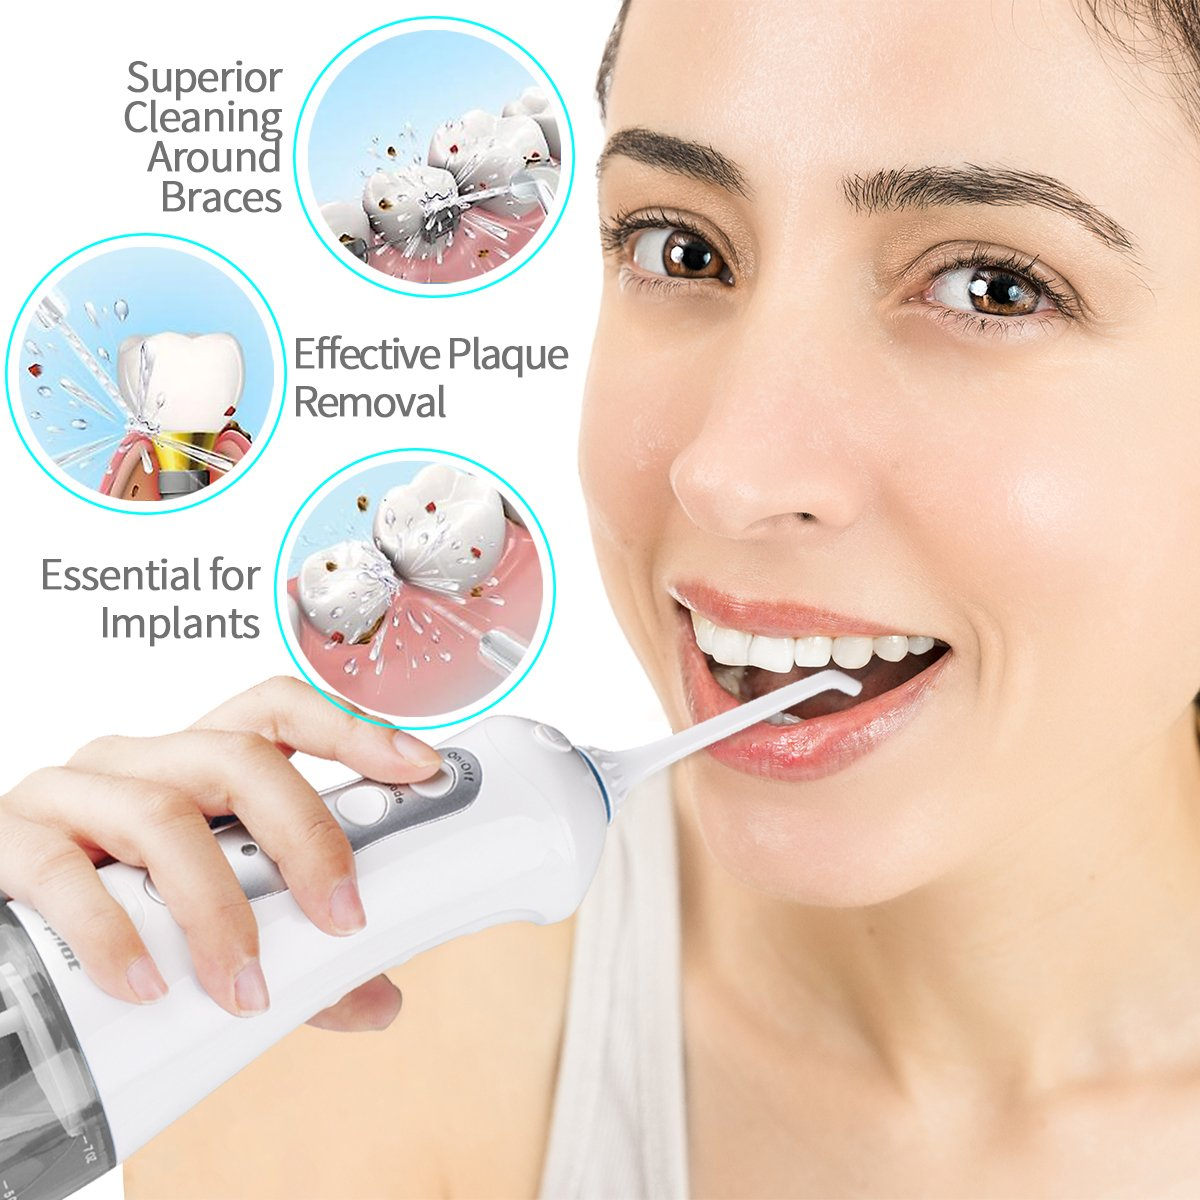 Water Flosser for Teeth,Power Floss Water Jet with 4 Jet Nozzles for Teeth Clean,200ml Detachable Reservoir,IPX7 Waterproof, USB Rechargeable, 3 Water Pressure and FDA Approved - Gray